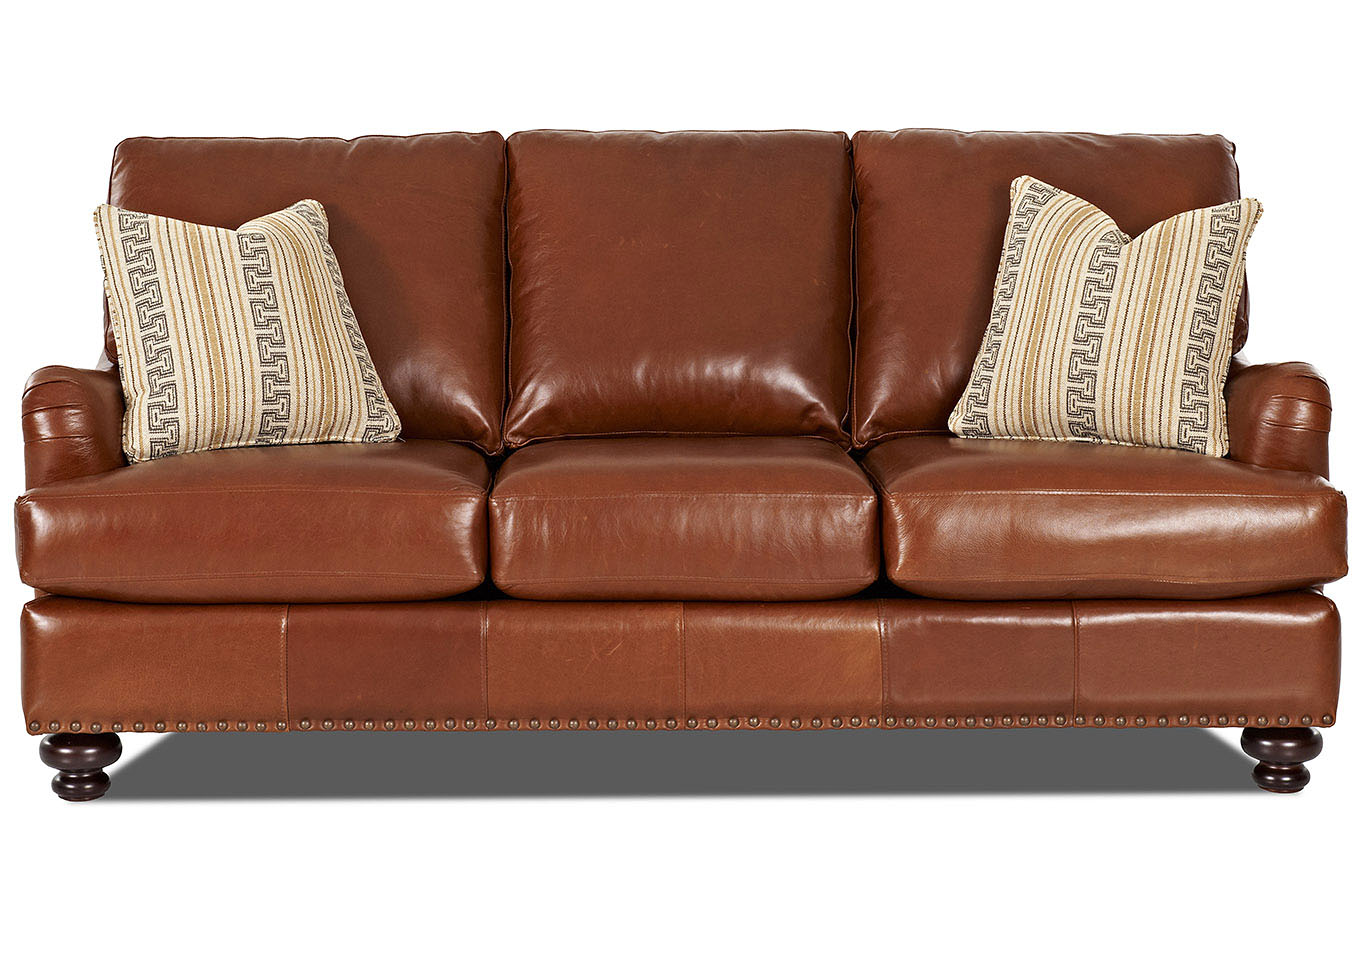 Loxley Chestnut Brown Leather Stationary Sofa,Klaussner Home Furnishings